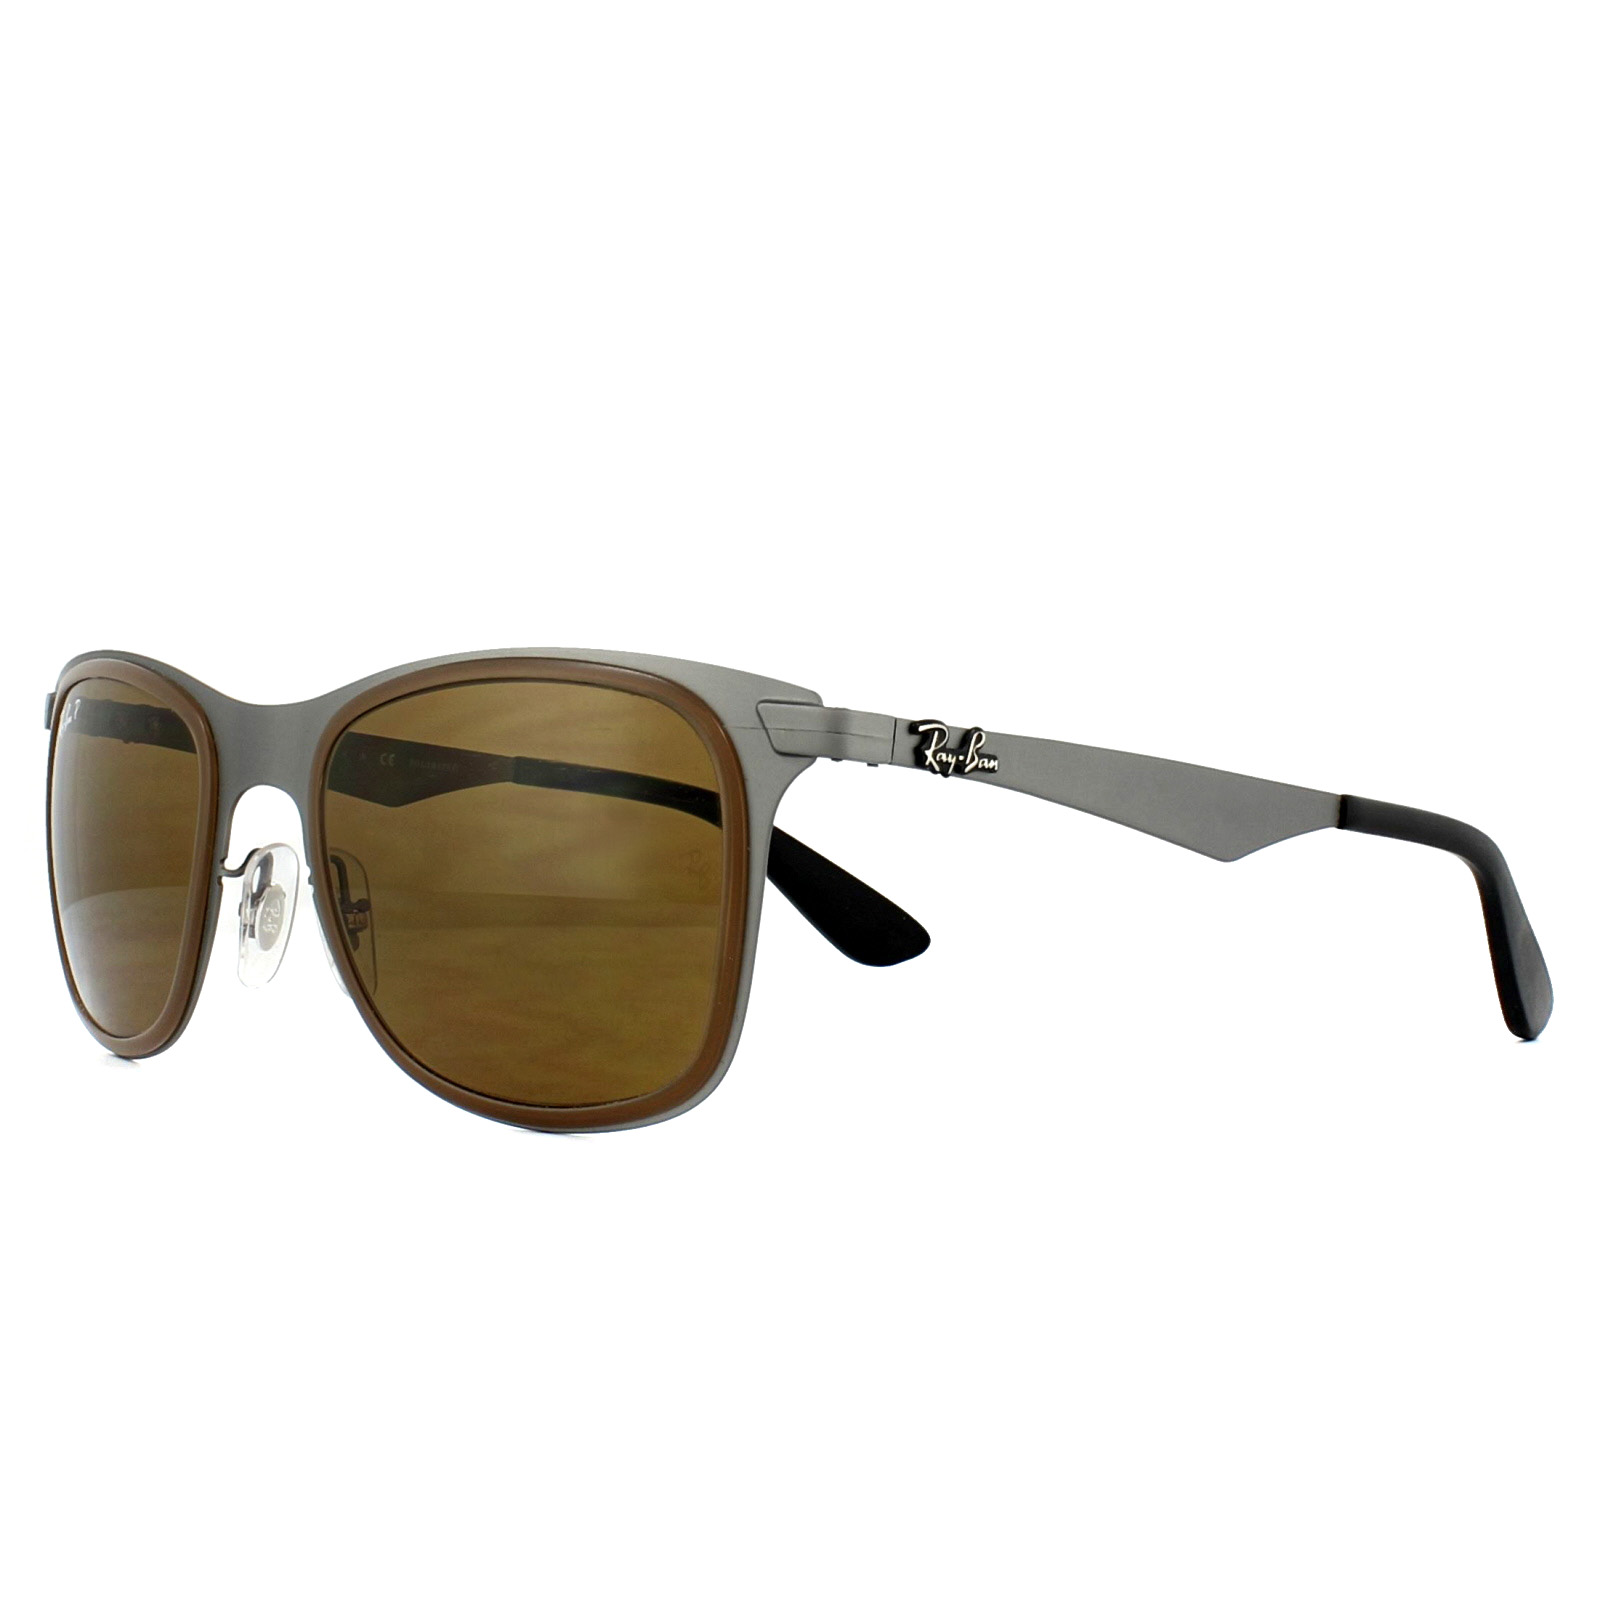 b54f8b0275 clearance sentinel ray ban sunglasses wayfarer flat metal 3521m 029 83  gunmetal brown polarized d86fa 08c0c